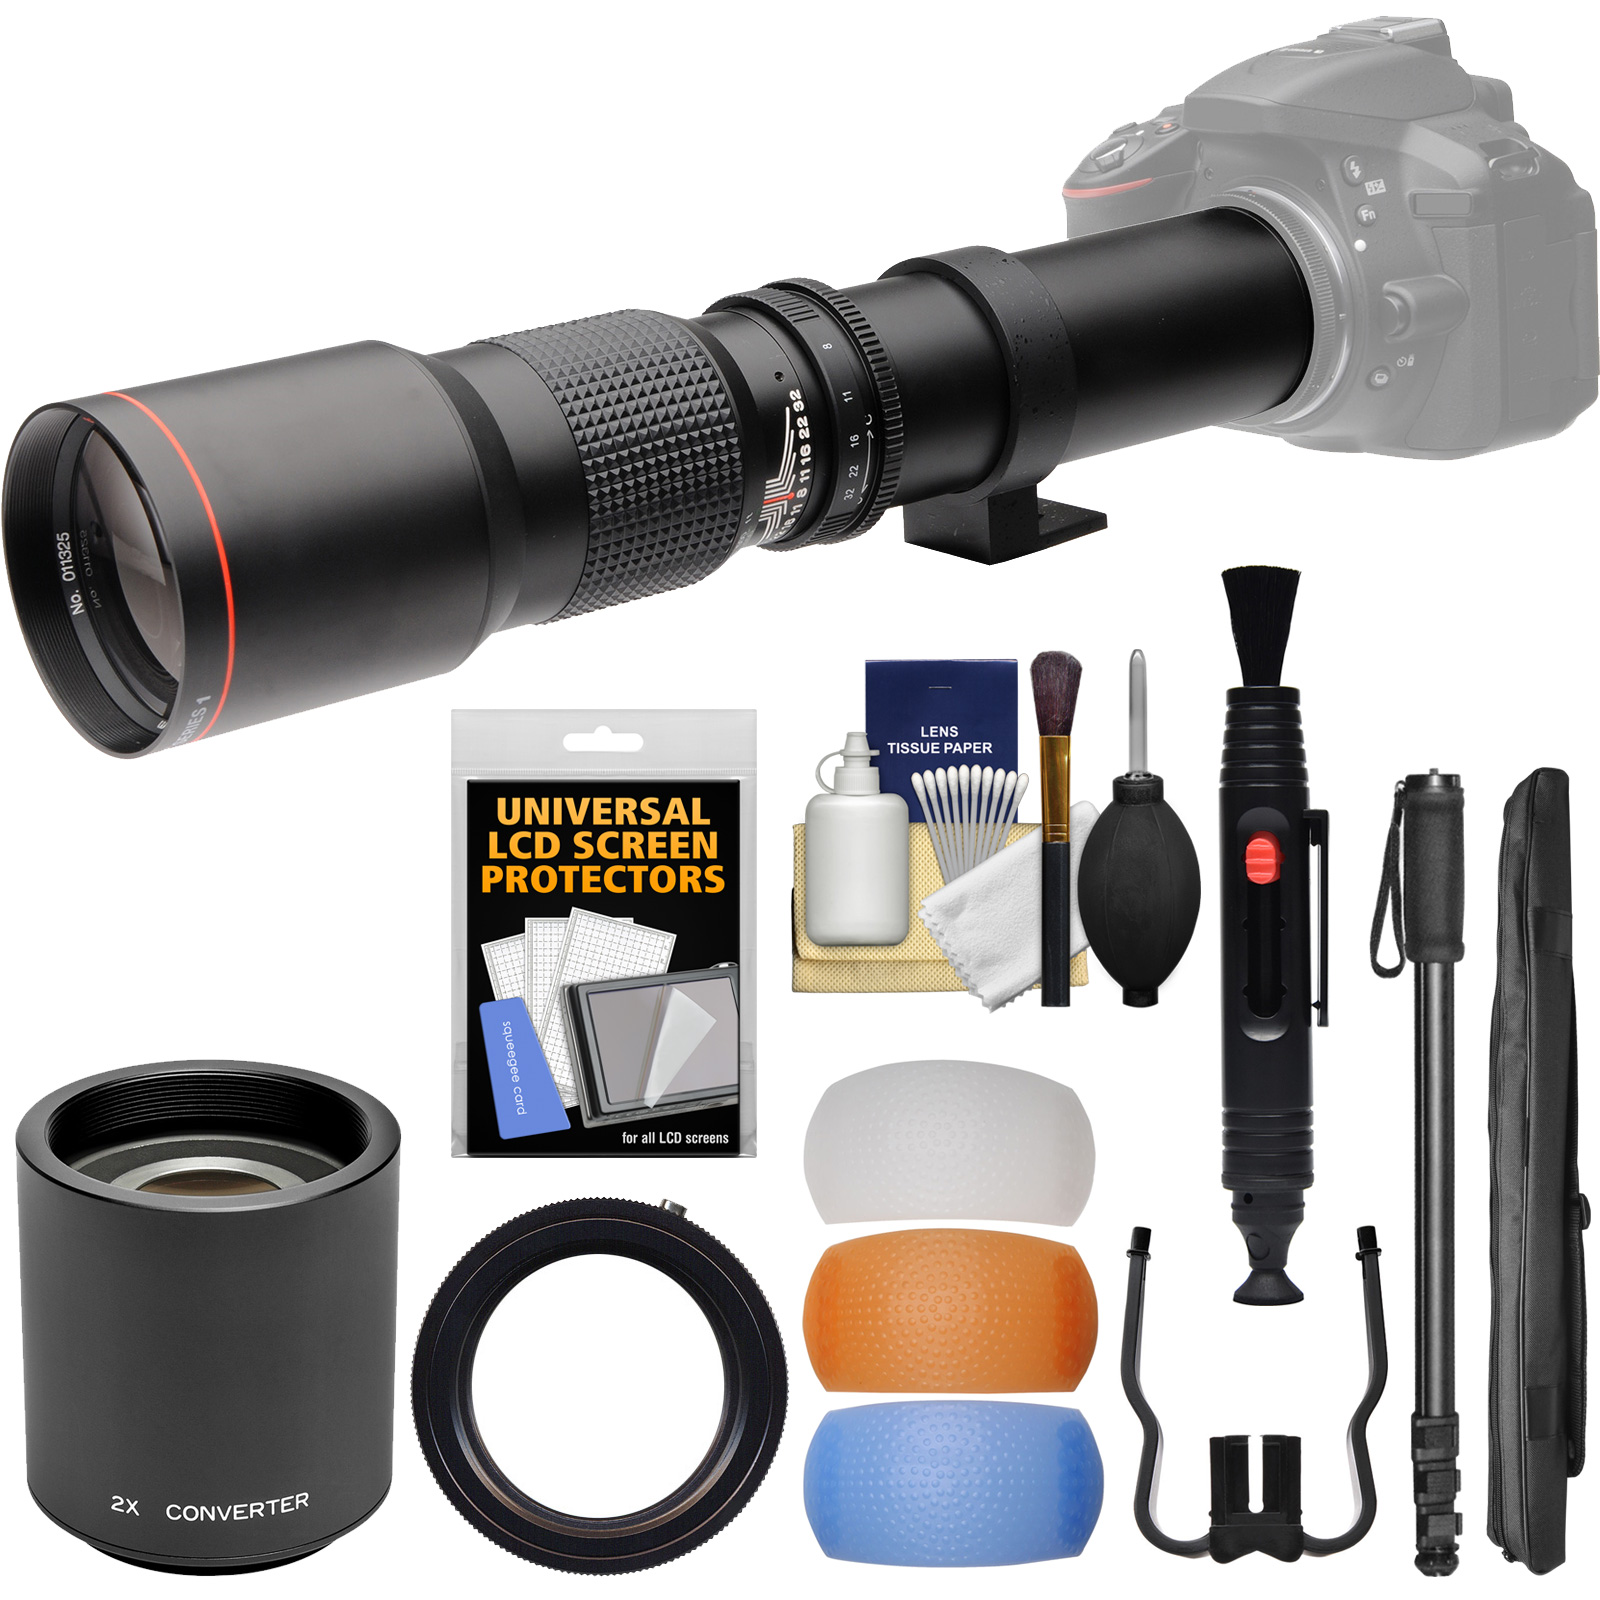 Vivitar 500mm f/8.0 Telephoto Lens (T Mount) & 2x Teleconverter (=1000mm) + 3 Color Flash Diffusers + Monopod Kit for Nikon Digital SLR Cameras